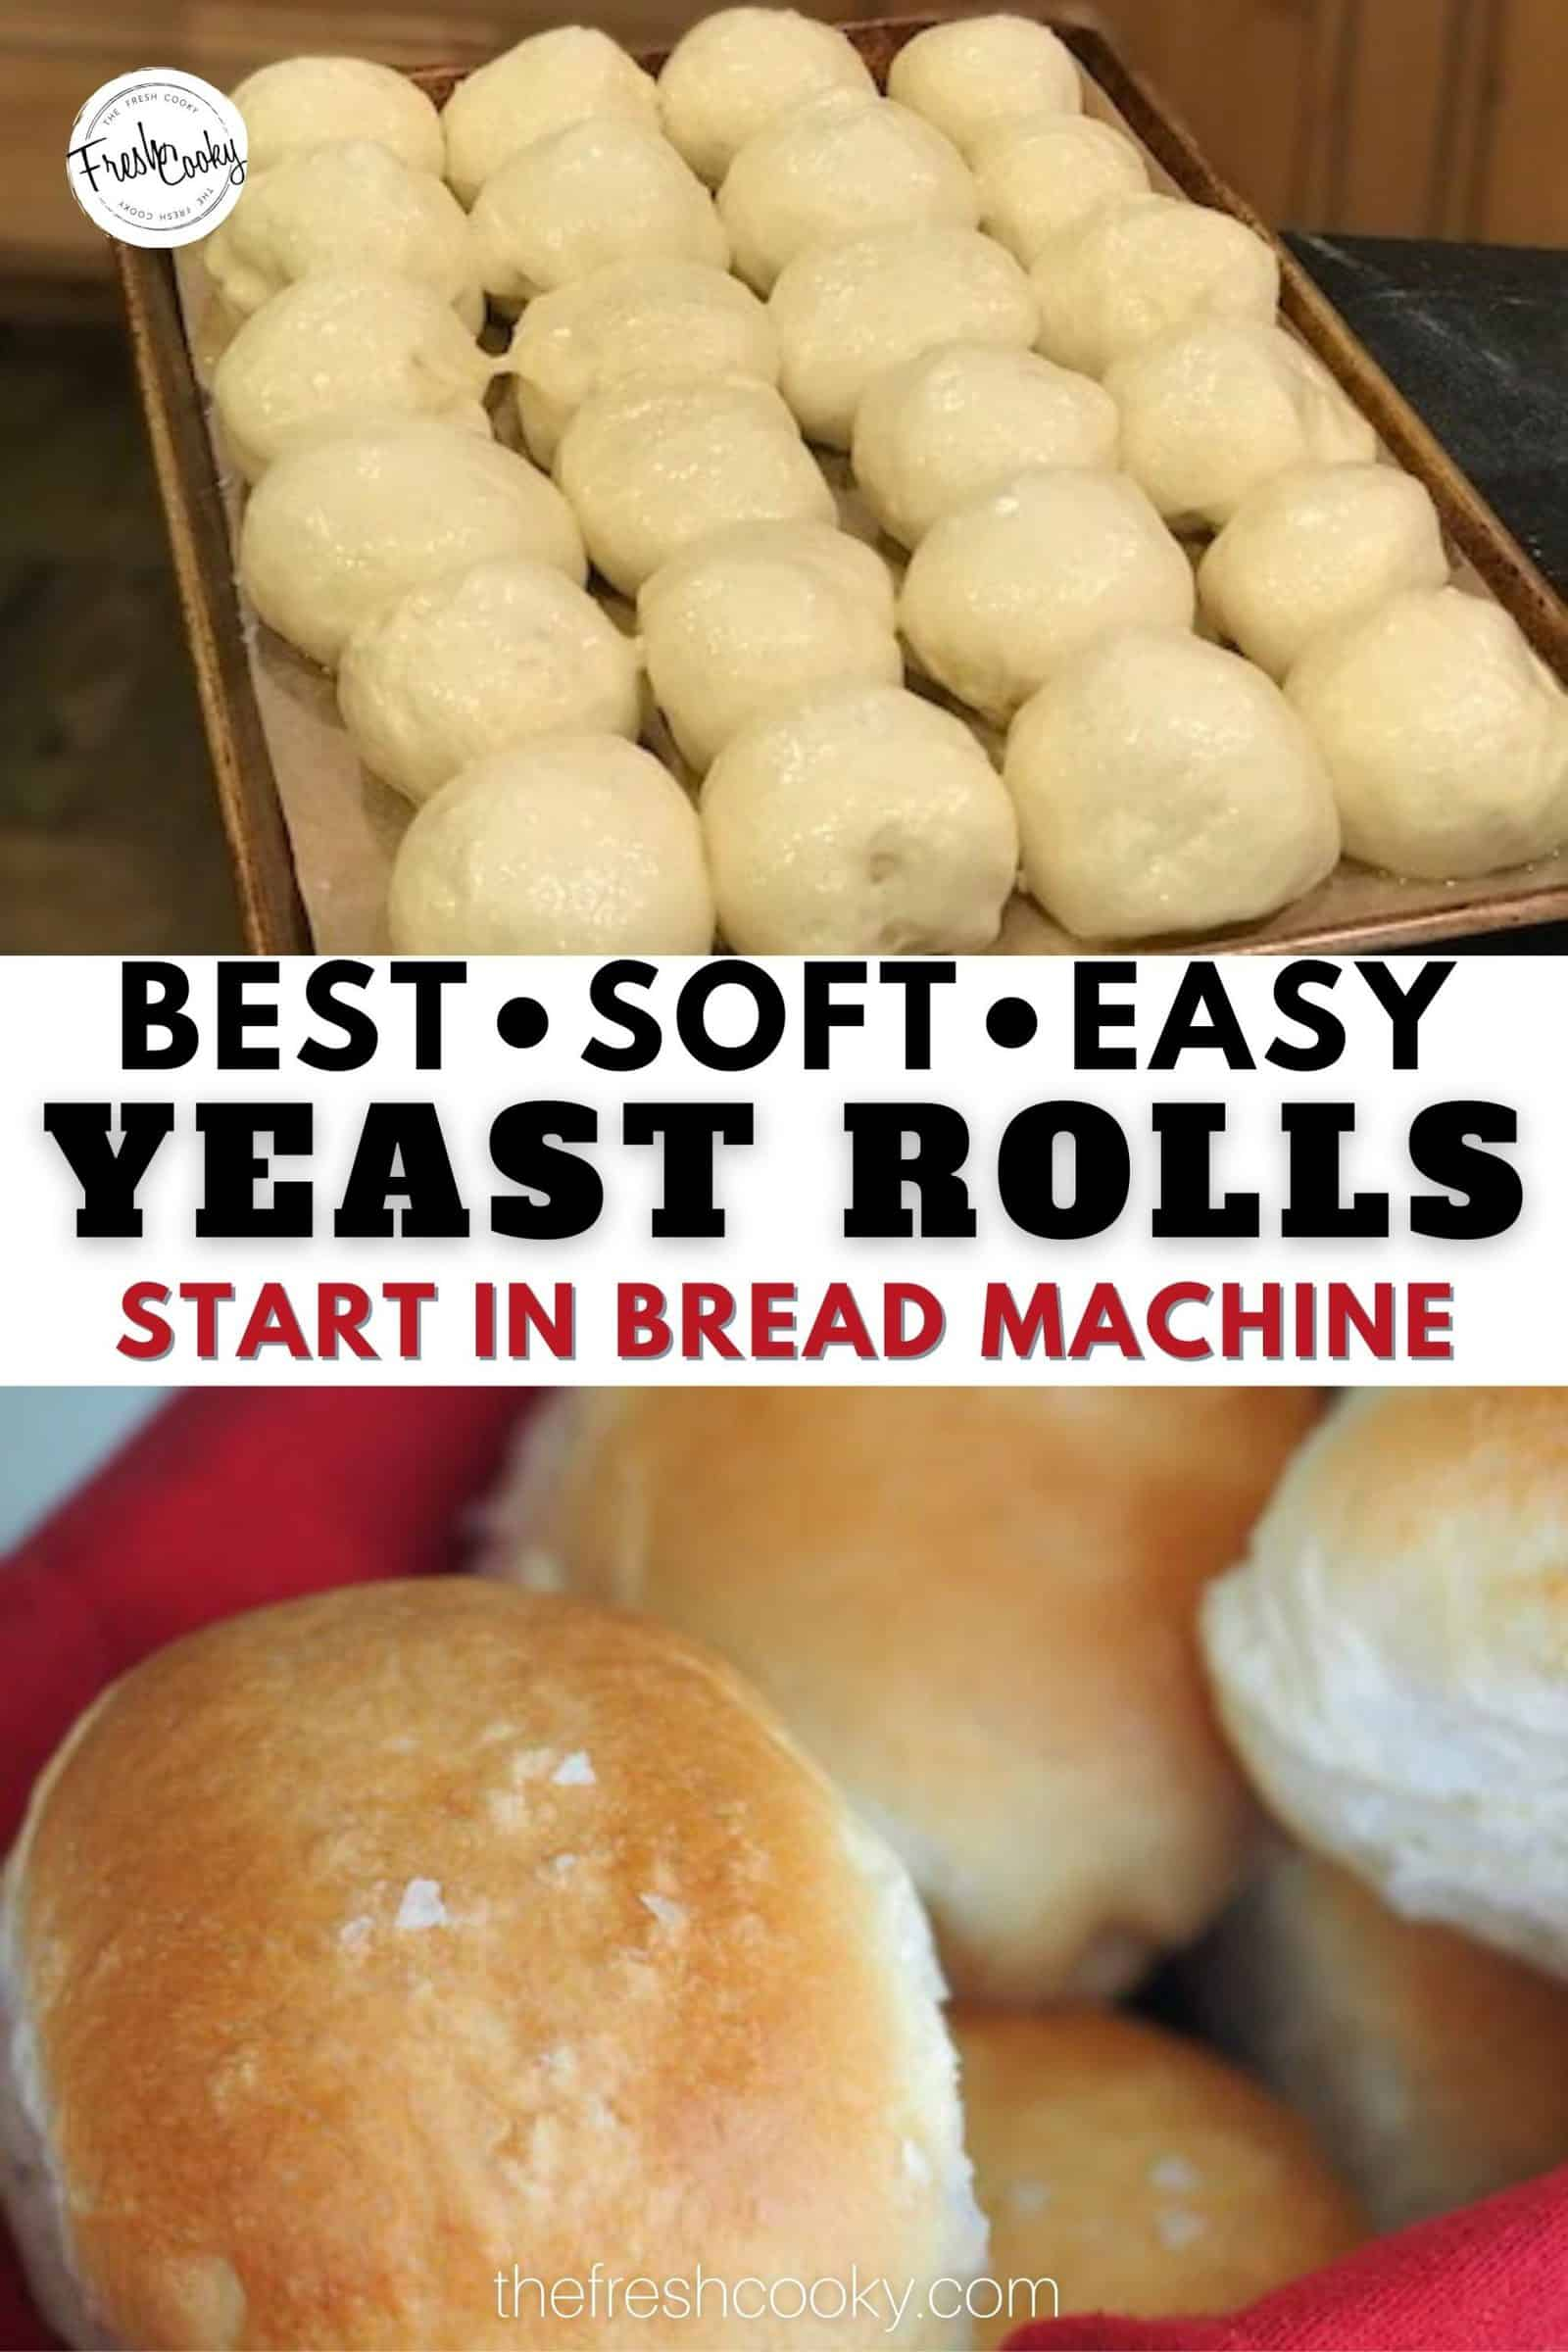 These no fail easy yeast rolls are perfect for your holiday meals. Start at noon and have fresh, hot, warm, soft dinner rolls by dinner! #thefreshcooky #easydinnerrolls #holidayrecipes via @thefreshcooky